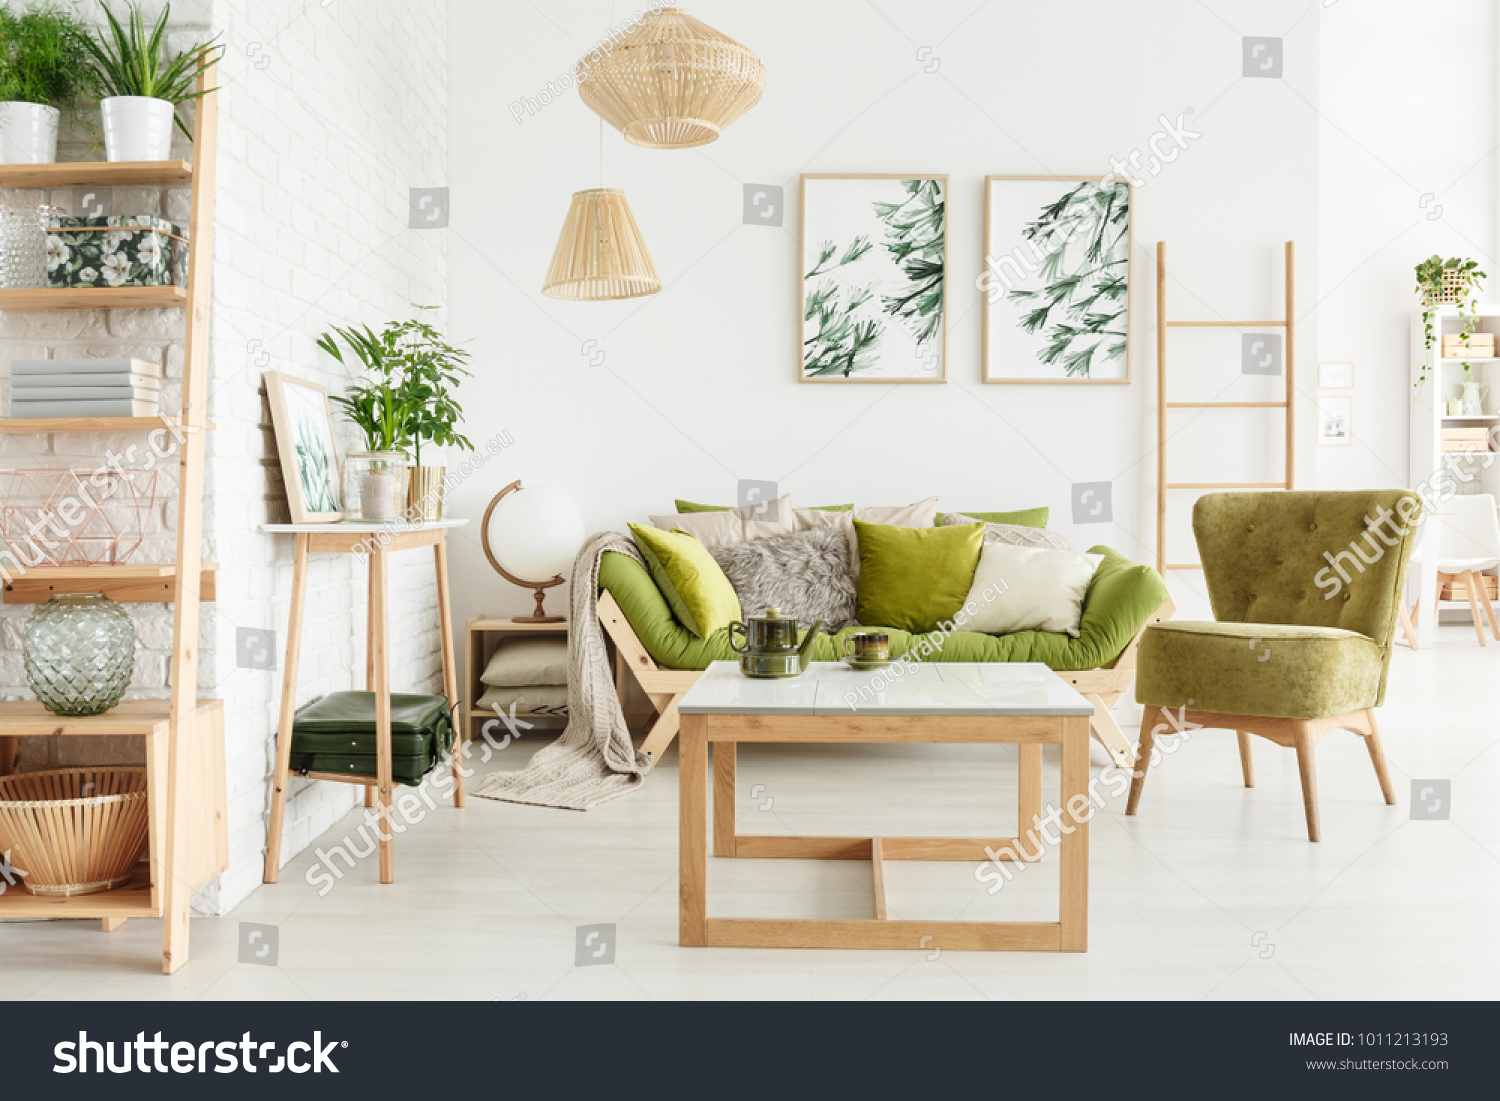 green cushions living room furniture set with tv cozy interior suede stock photo edit now armchair wooden sofa and decorations